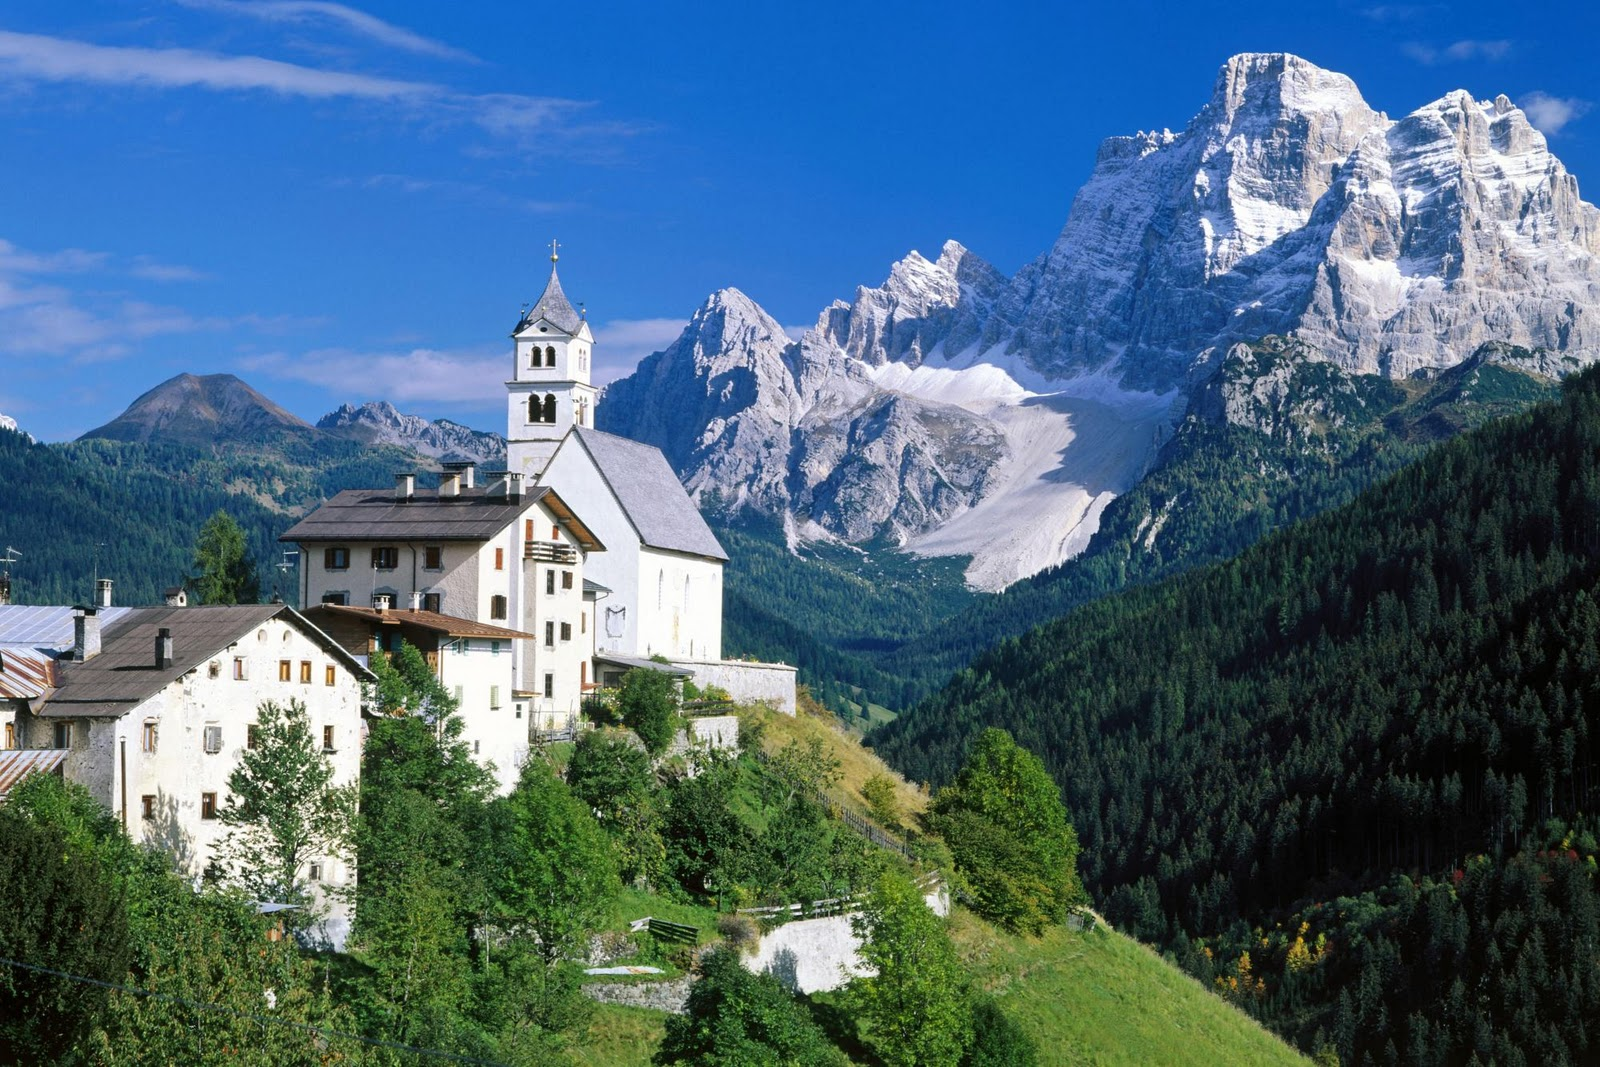 http://1.bp.blogspot.com/-WbfRbtp5aVc/TZwLPBNmKPI/AAAAAAAABNY/kaRcirQdqTE/s1600/Nice+wallpapers+the_dolomites_alps_italy-other.jpg